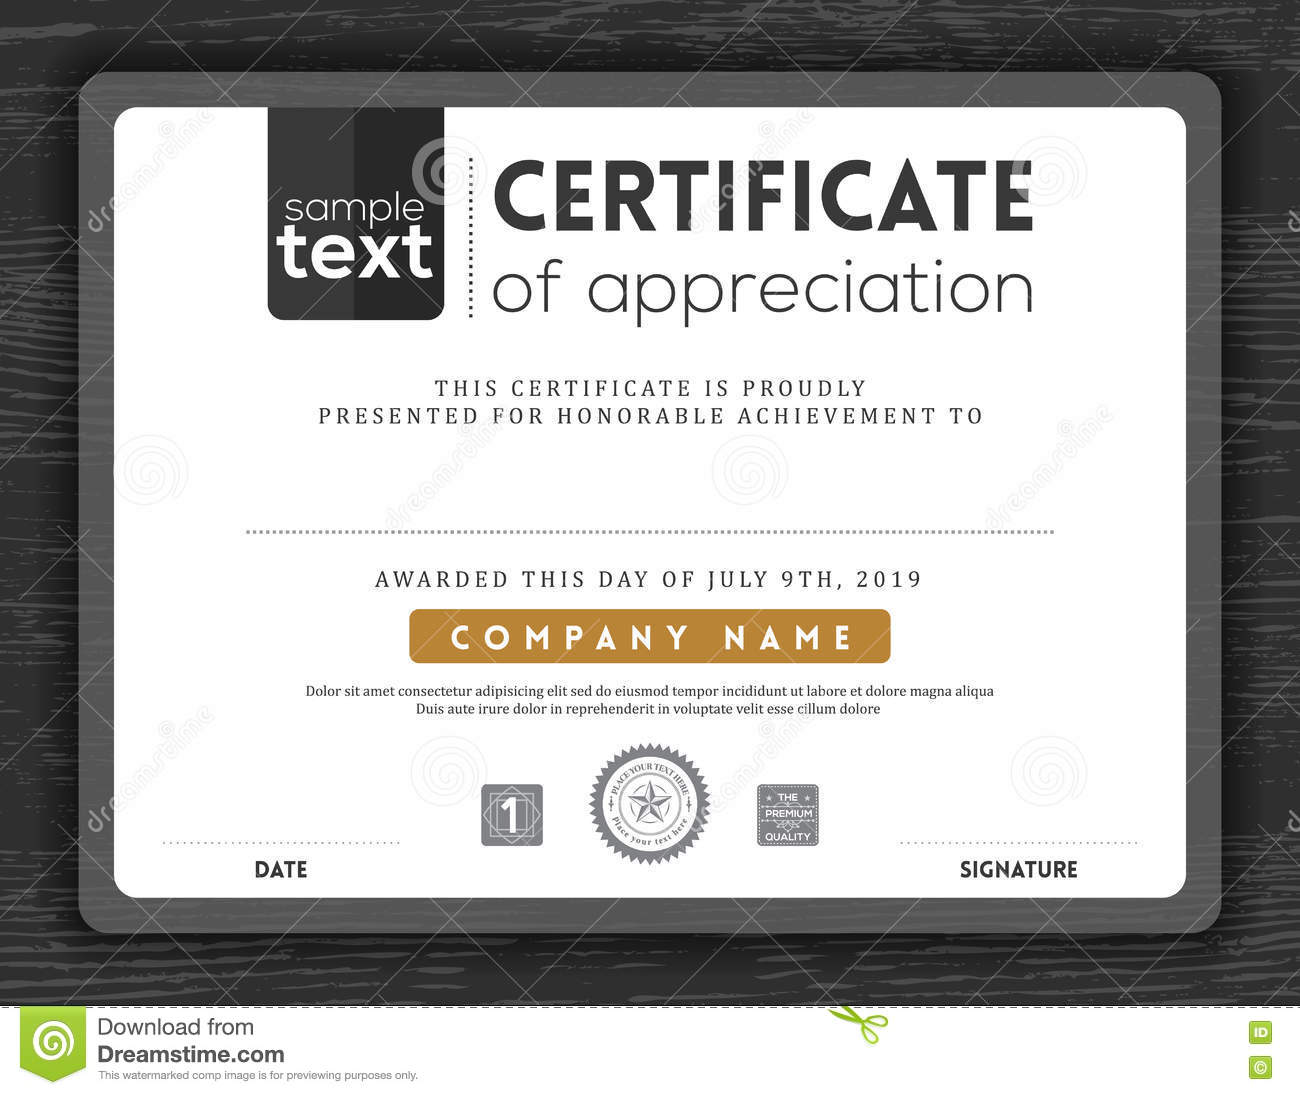 Simple certificate border frame design template stock vector simple certificate border frame design template royalty free vector yadclub Image collections